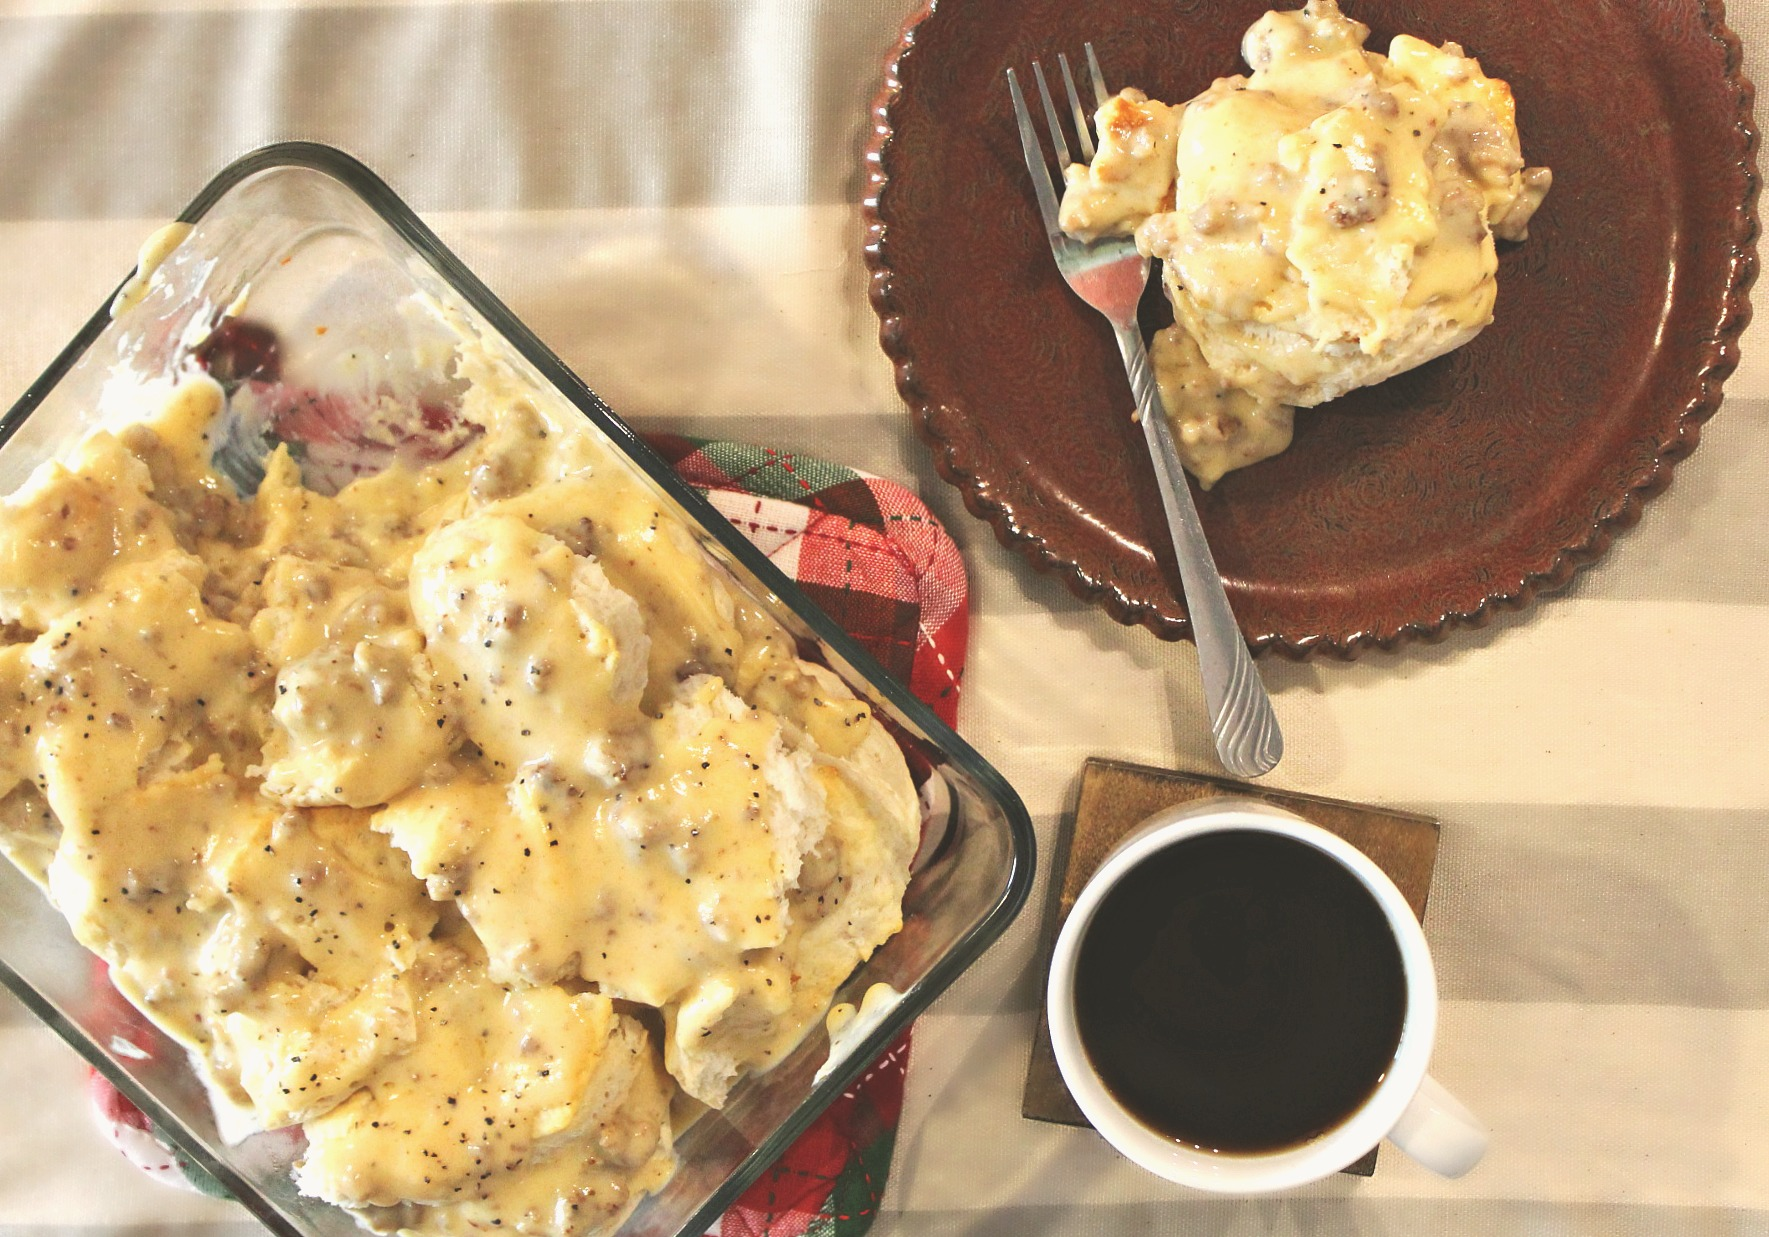 The Ultimate Cheesy Biscuits & Gravy Casserole